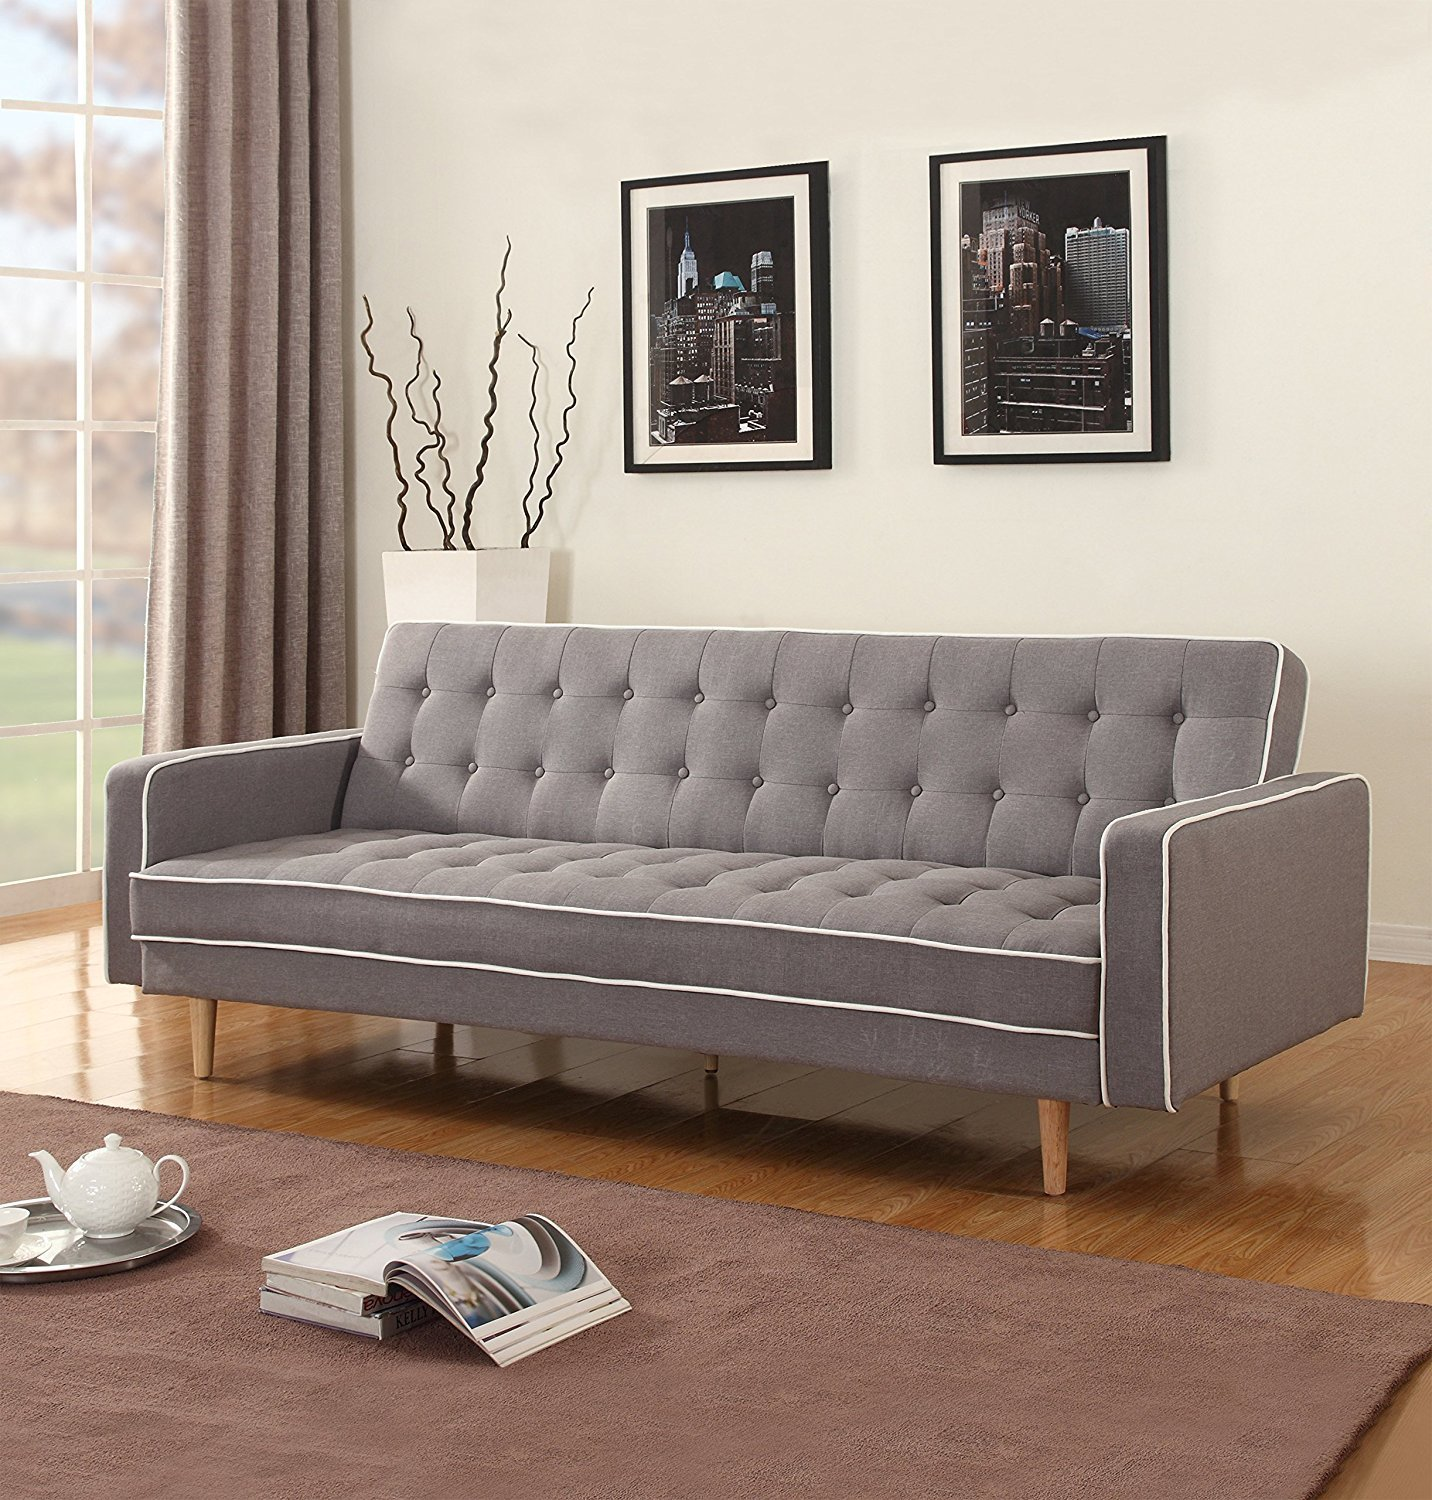 Top 10 Best Comfortable Sleeper Sofas In 2020 Review